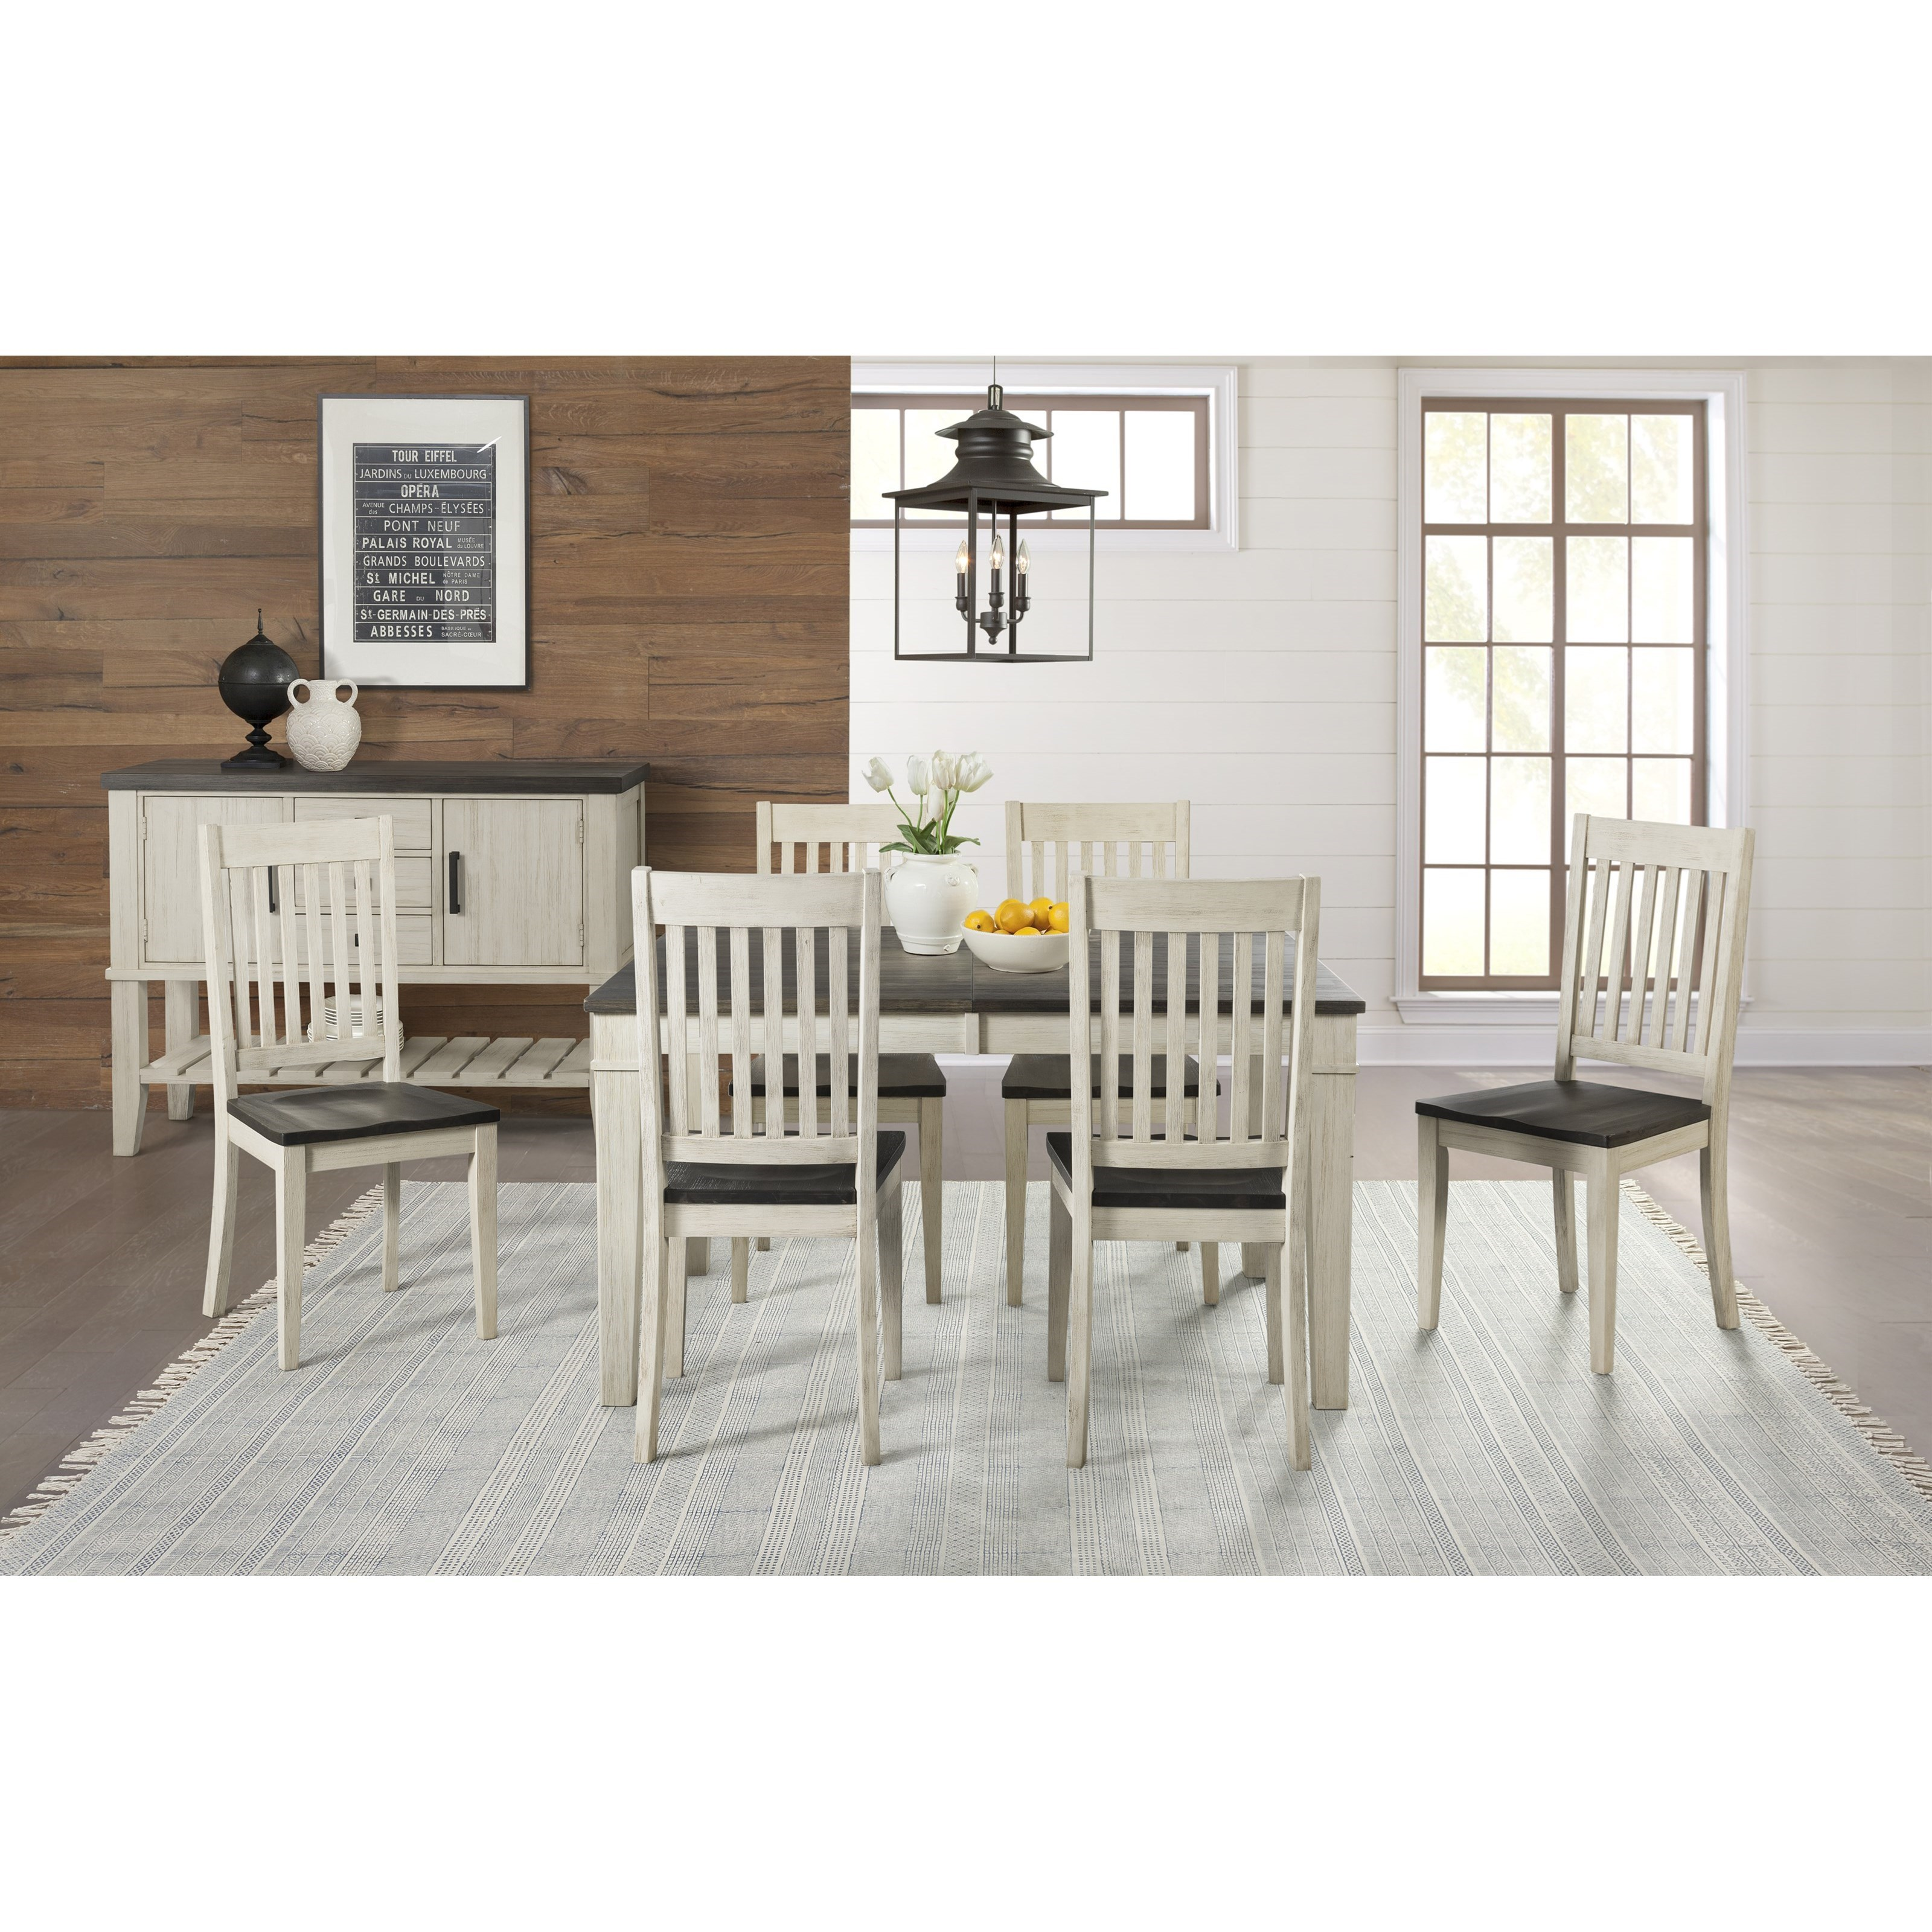 Standard Furniture Cambria Rectangular White Wood And: Transitional Solid Wood Rectangular Leg Table With